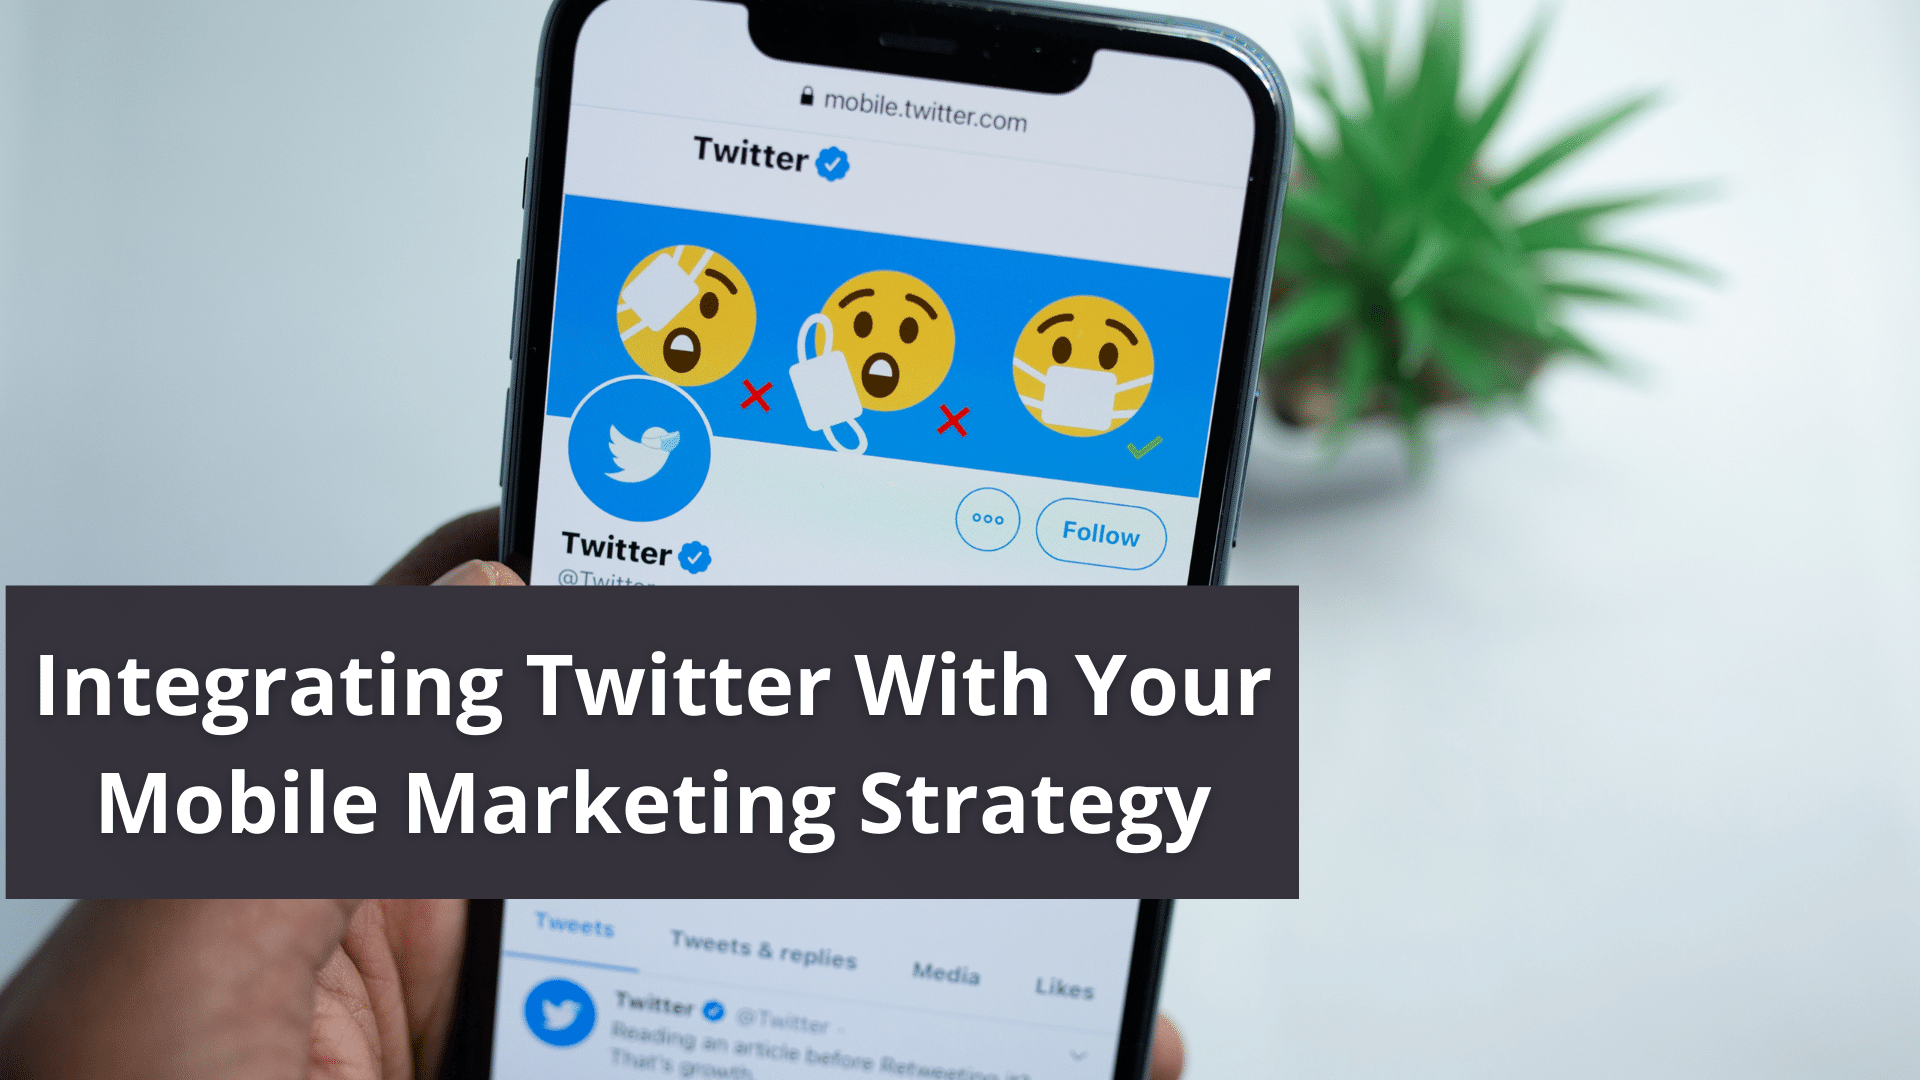 Integrating Twitter With Your Mobile Marketing Strategy 8